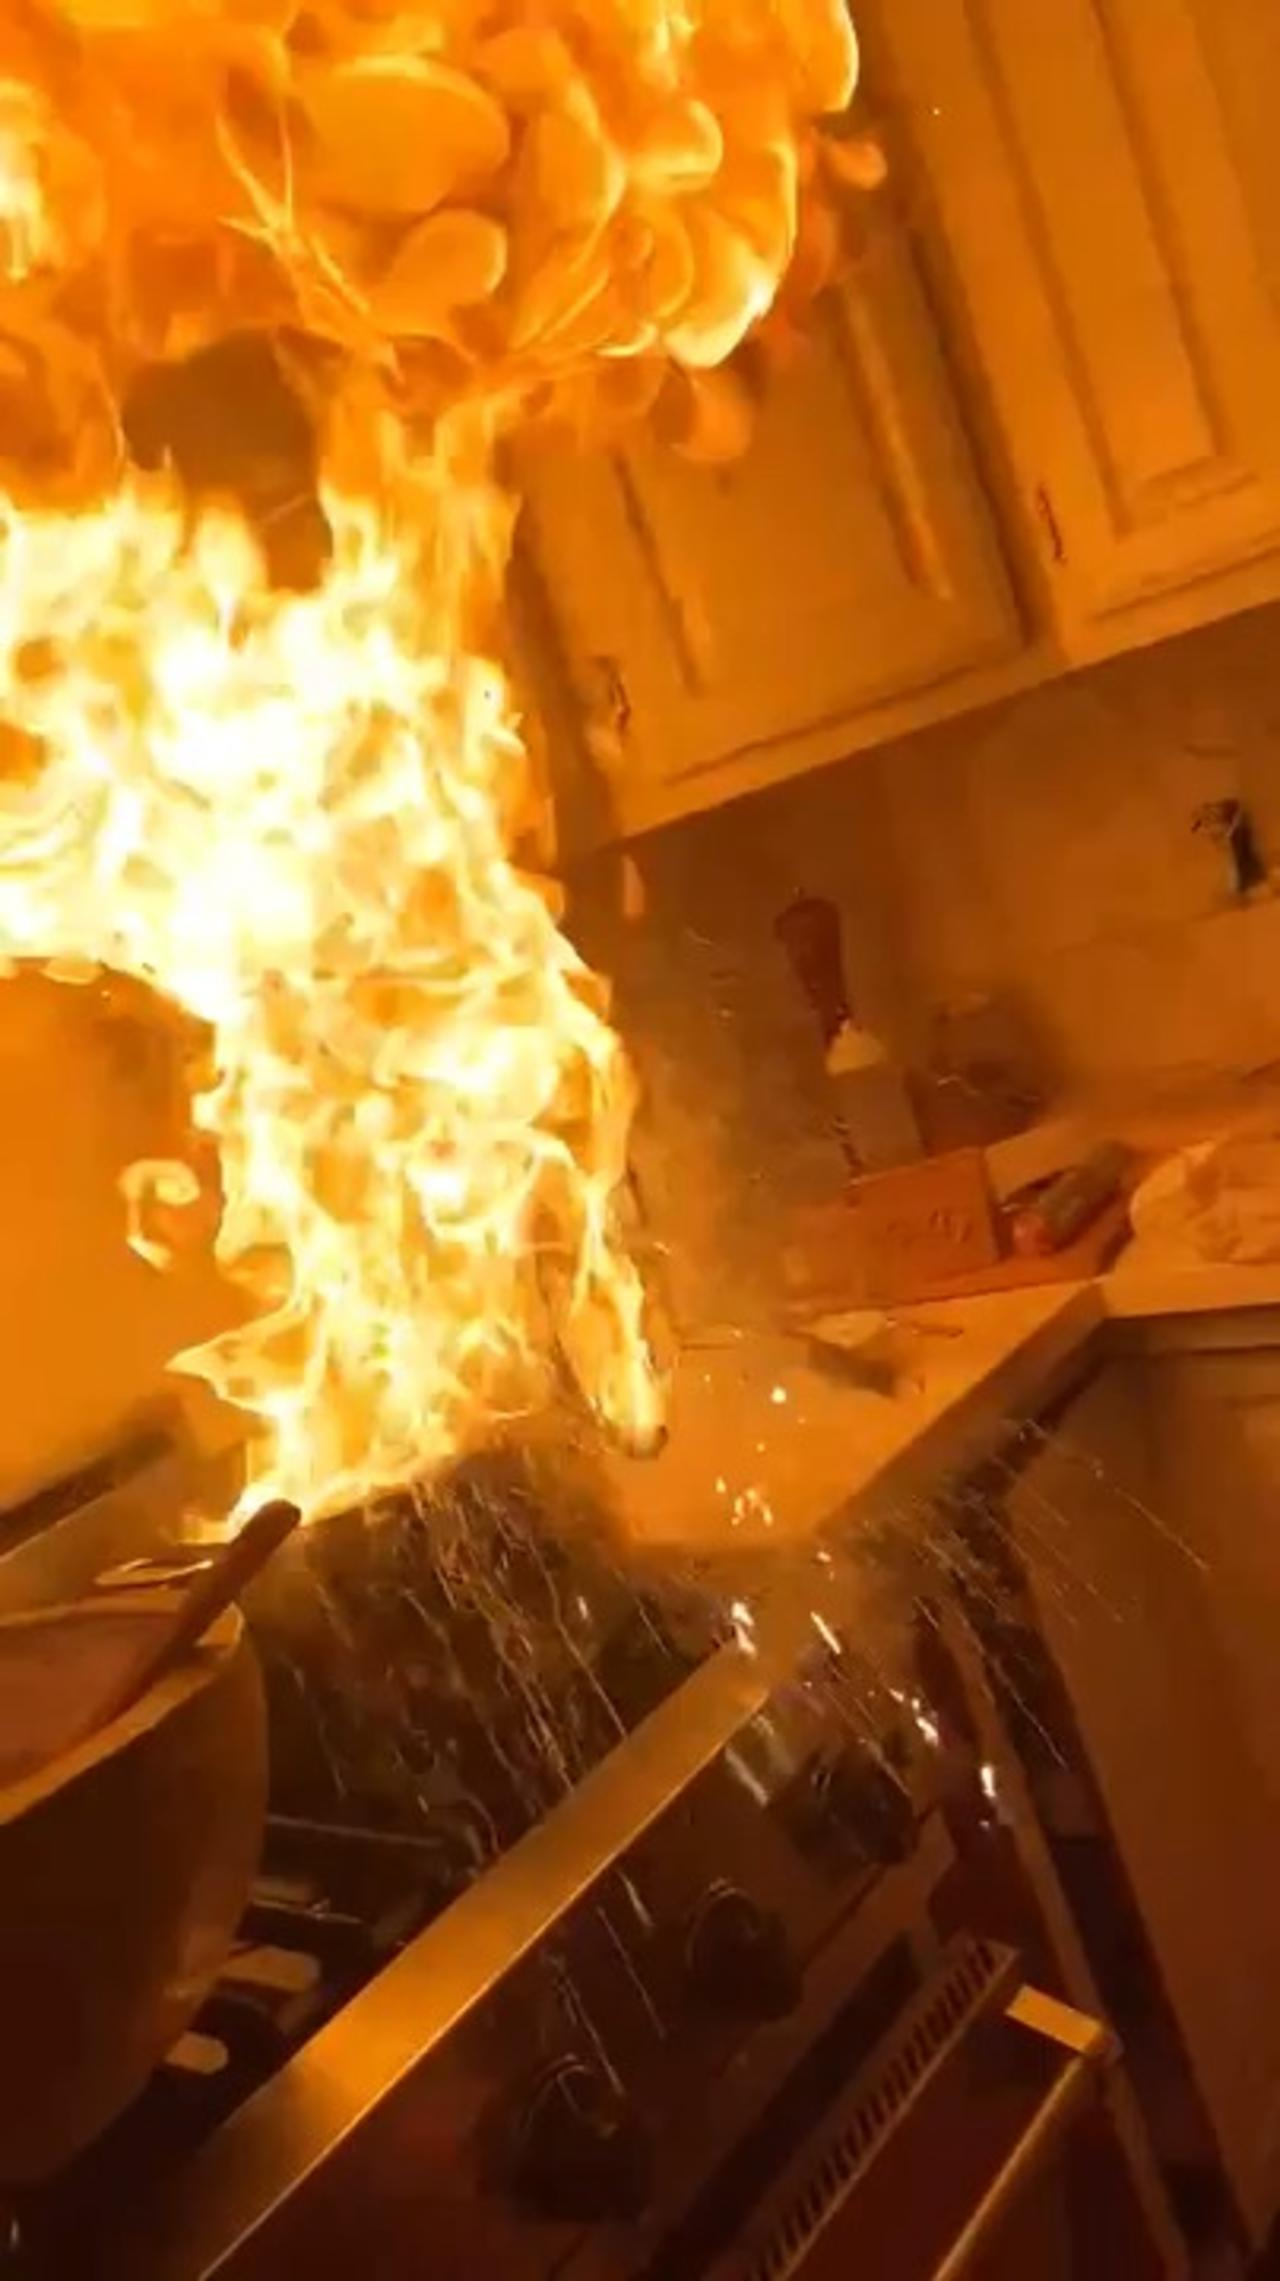 Girl Tries to Douse Fire in Pan With Cloth and Screams as she Accidentally Aggravates it